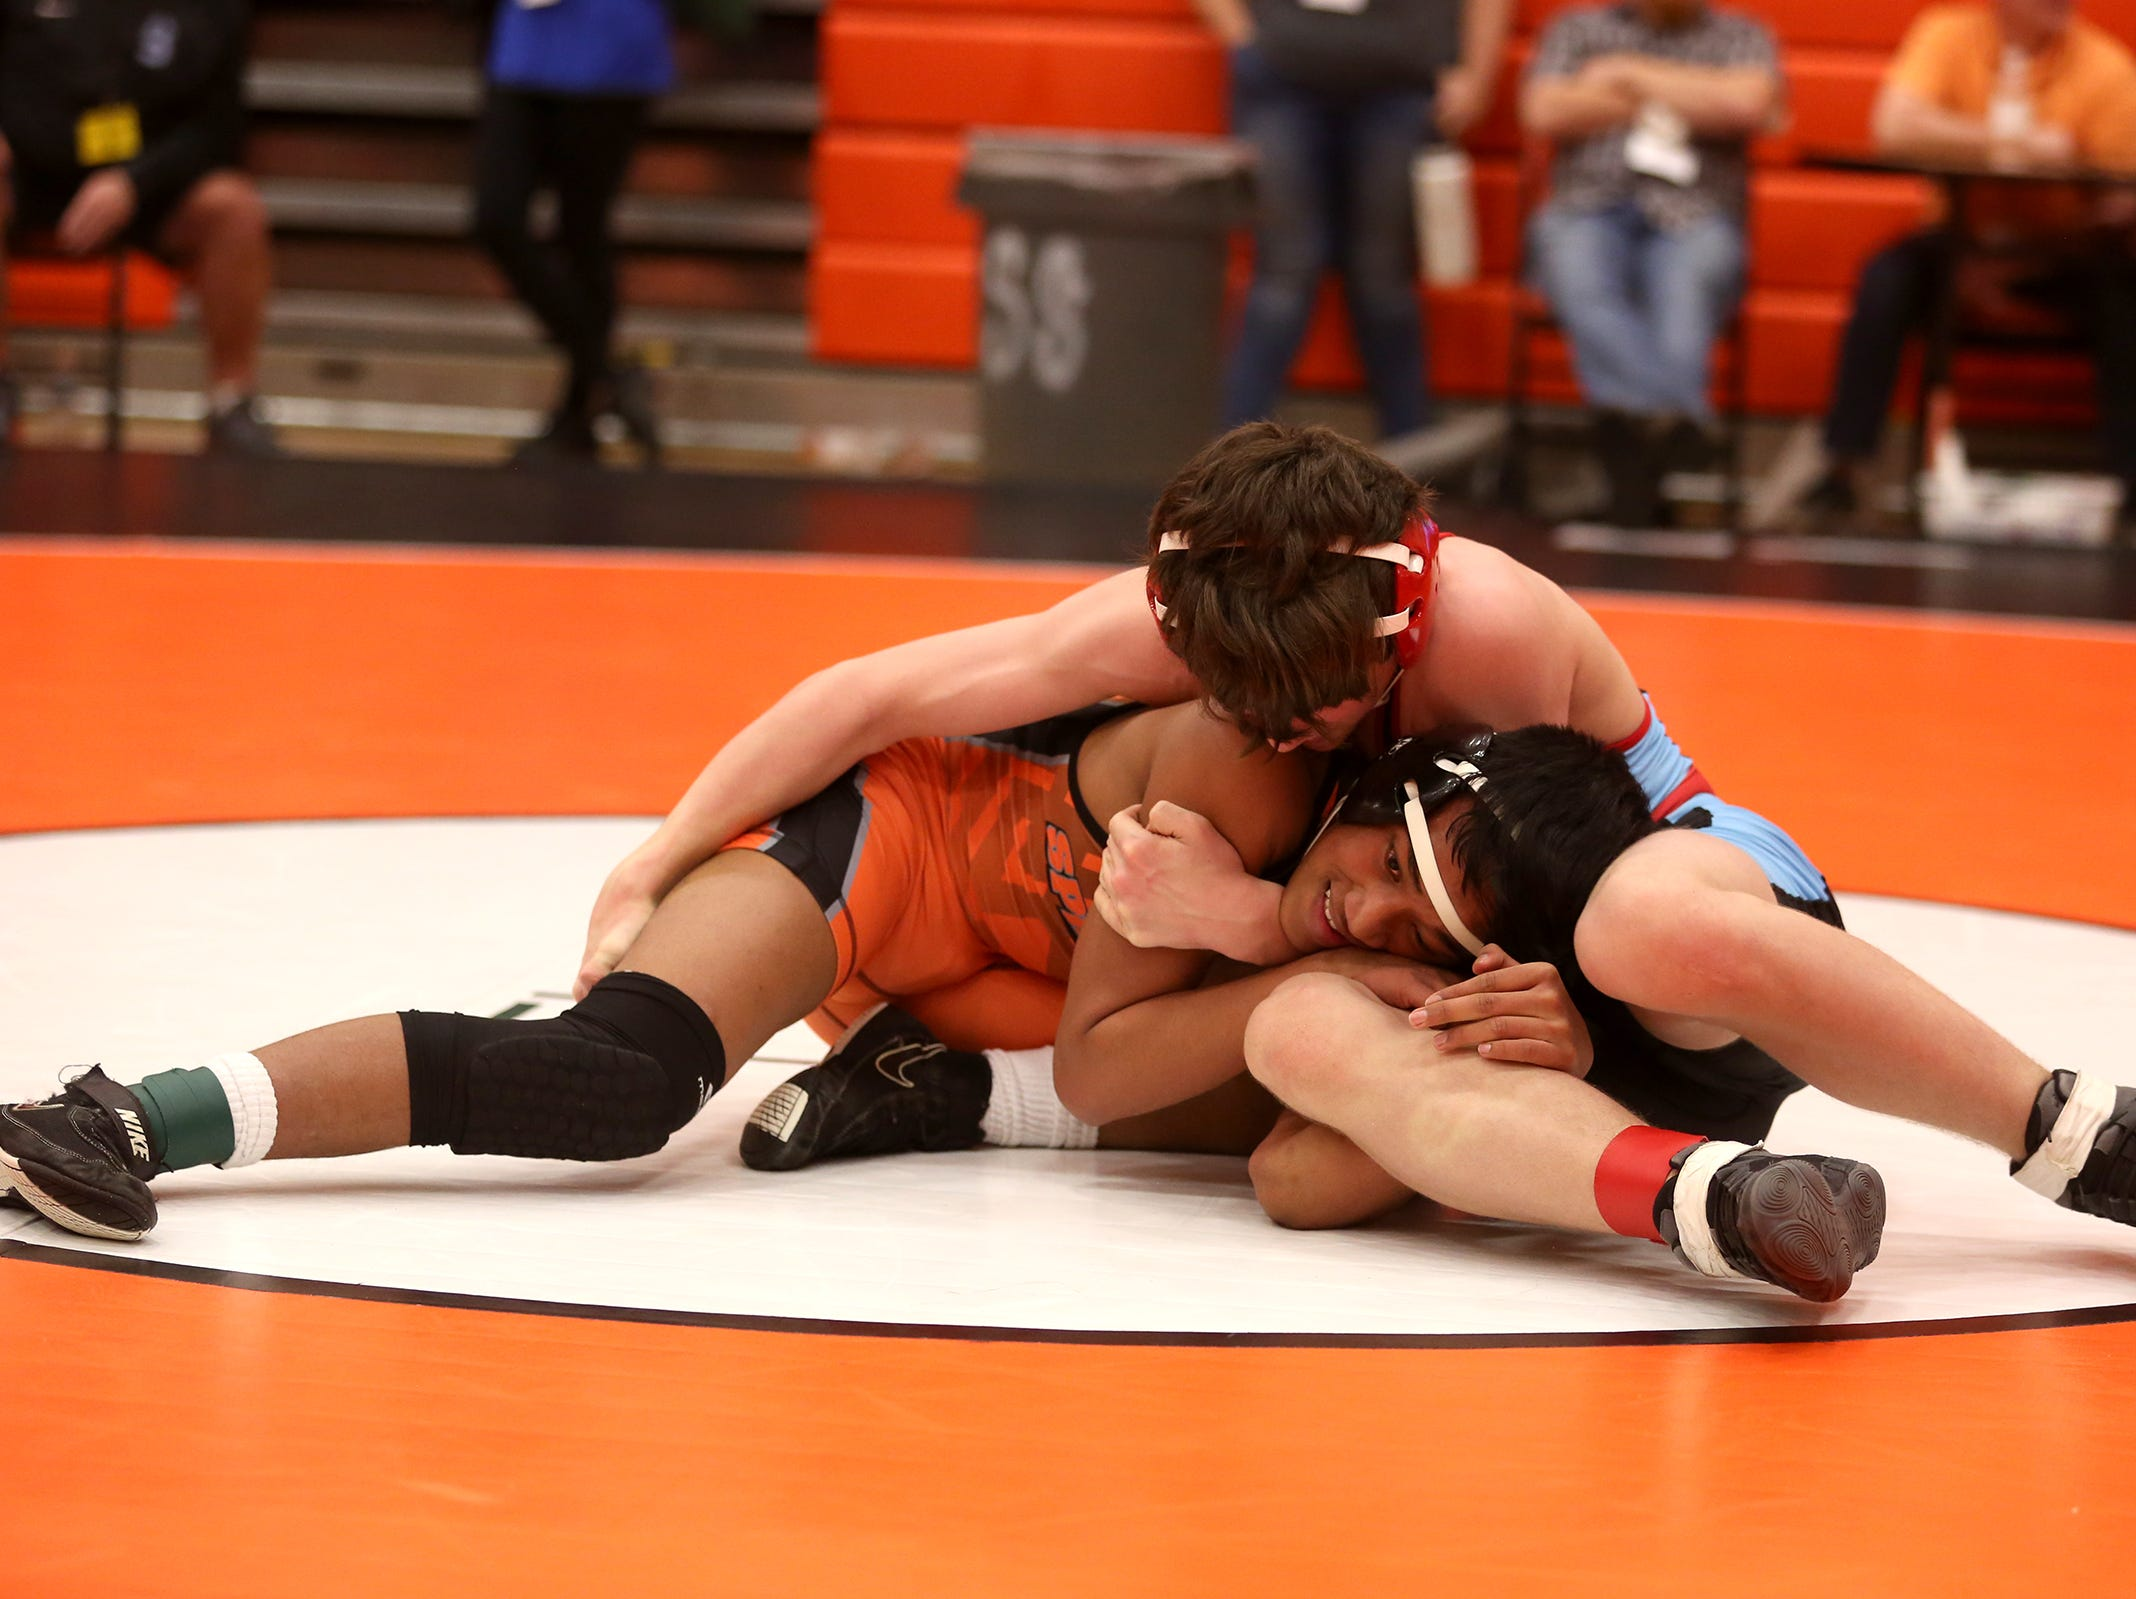 South Salem's Joshua Cox and Sprague's Jason Note compete in the 126 pound weight class during the Mountain Valley Conference district wrestling tournament at Sprague High School in Salem on Friday, Feb. 15, 2019.